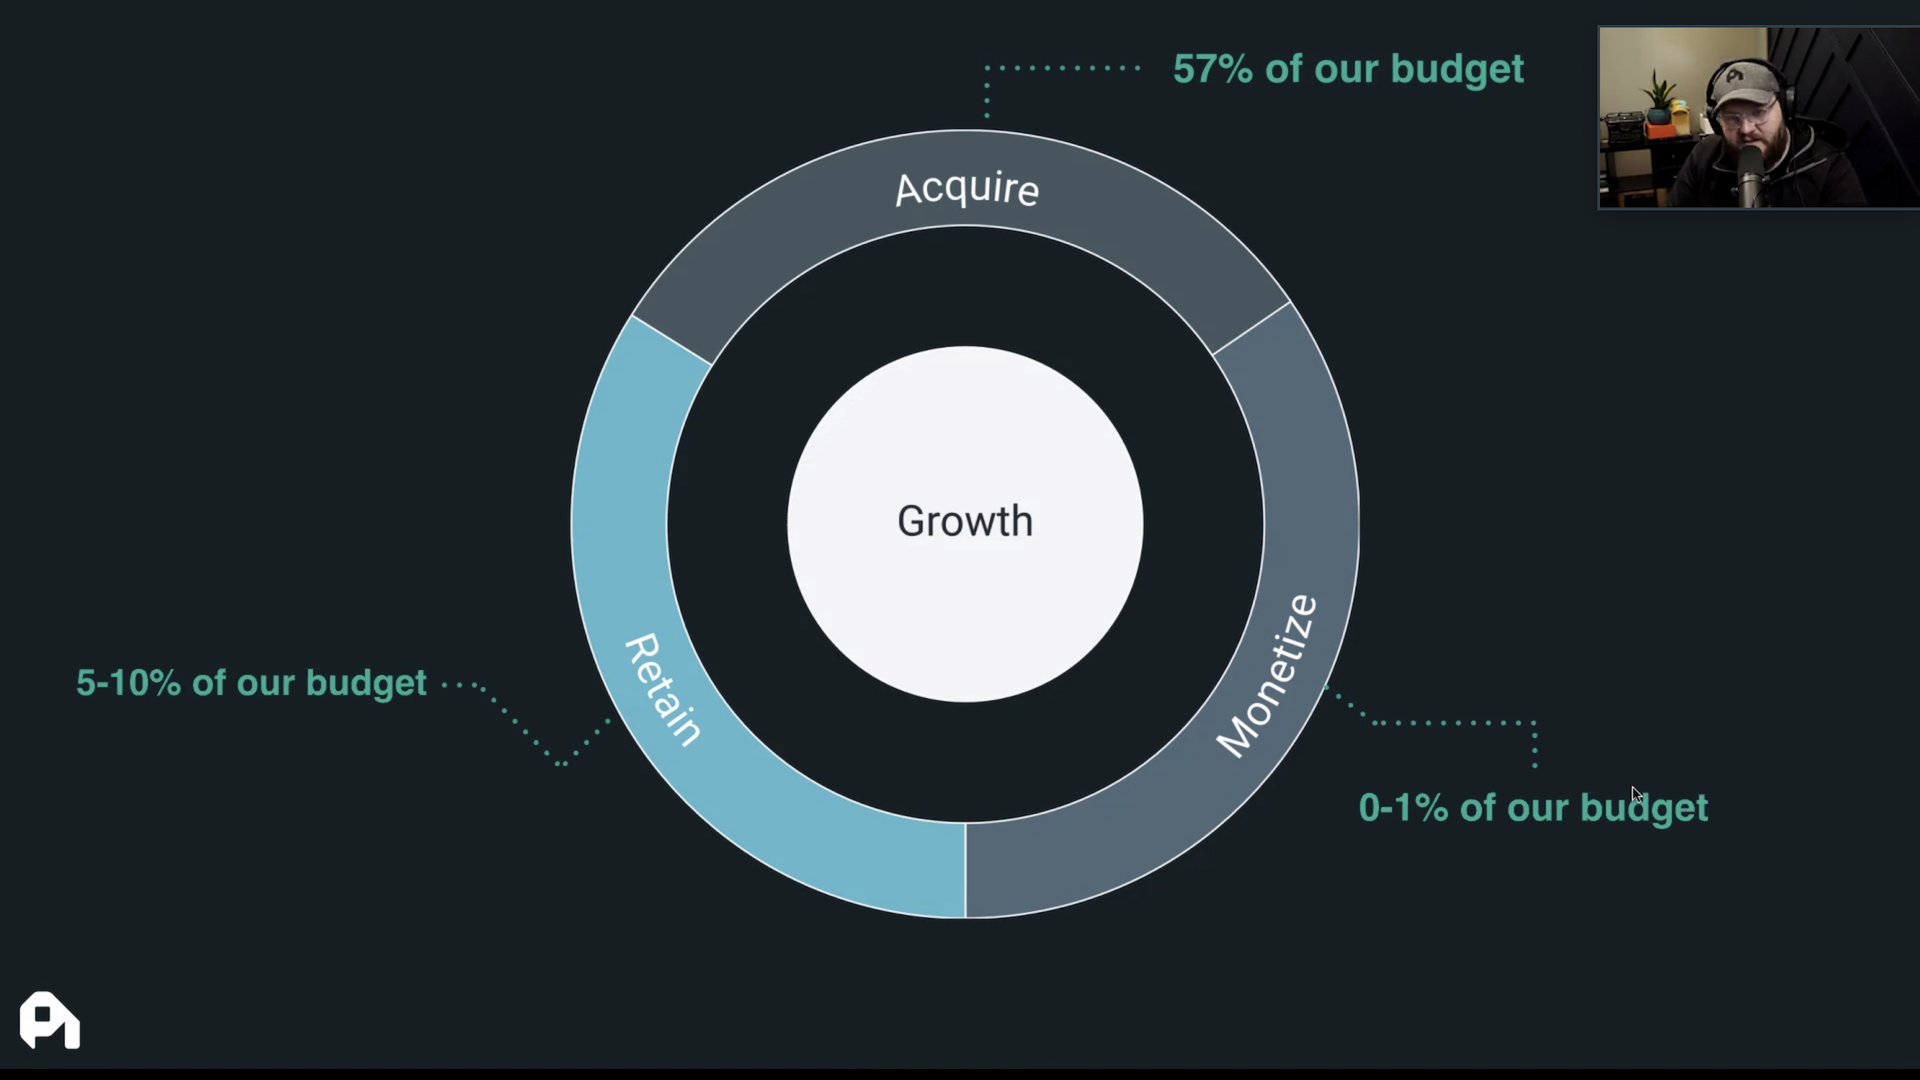 A bullseye that shows where companies are spending money to grow their business, with